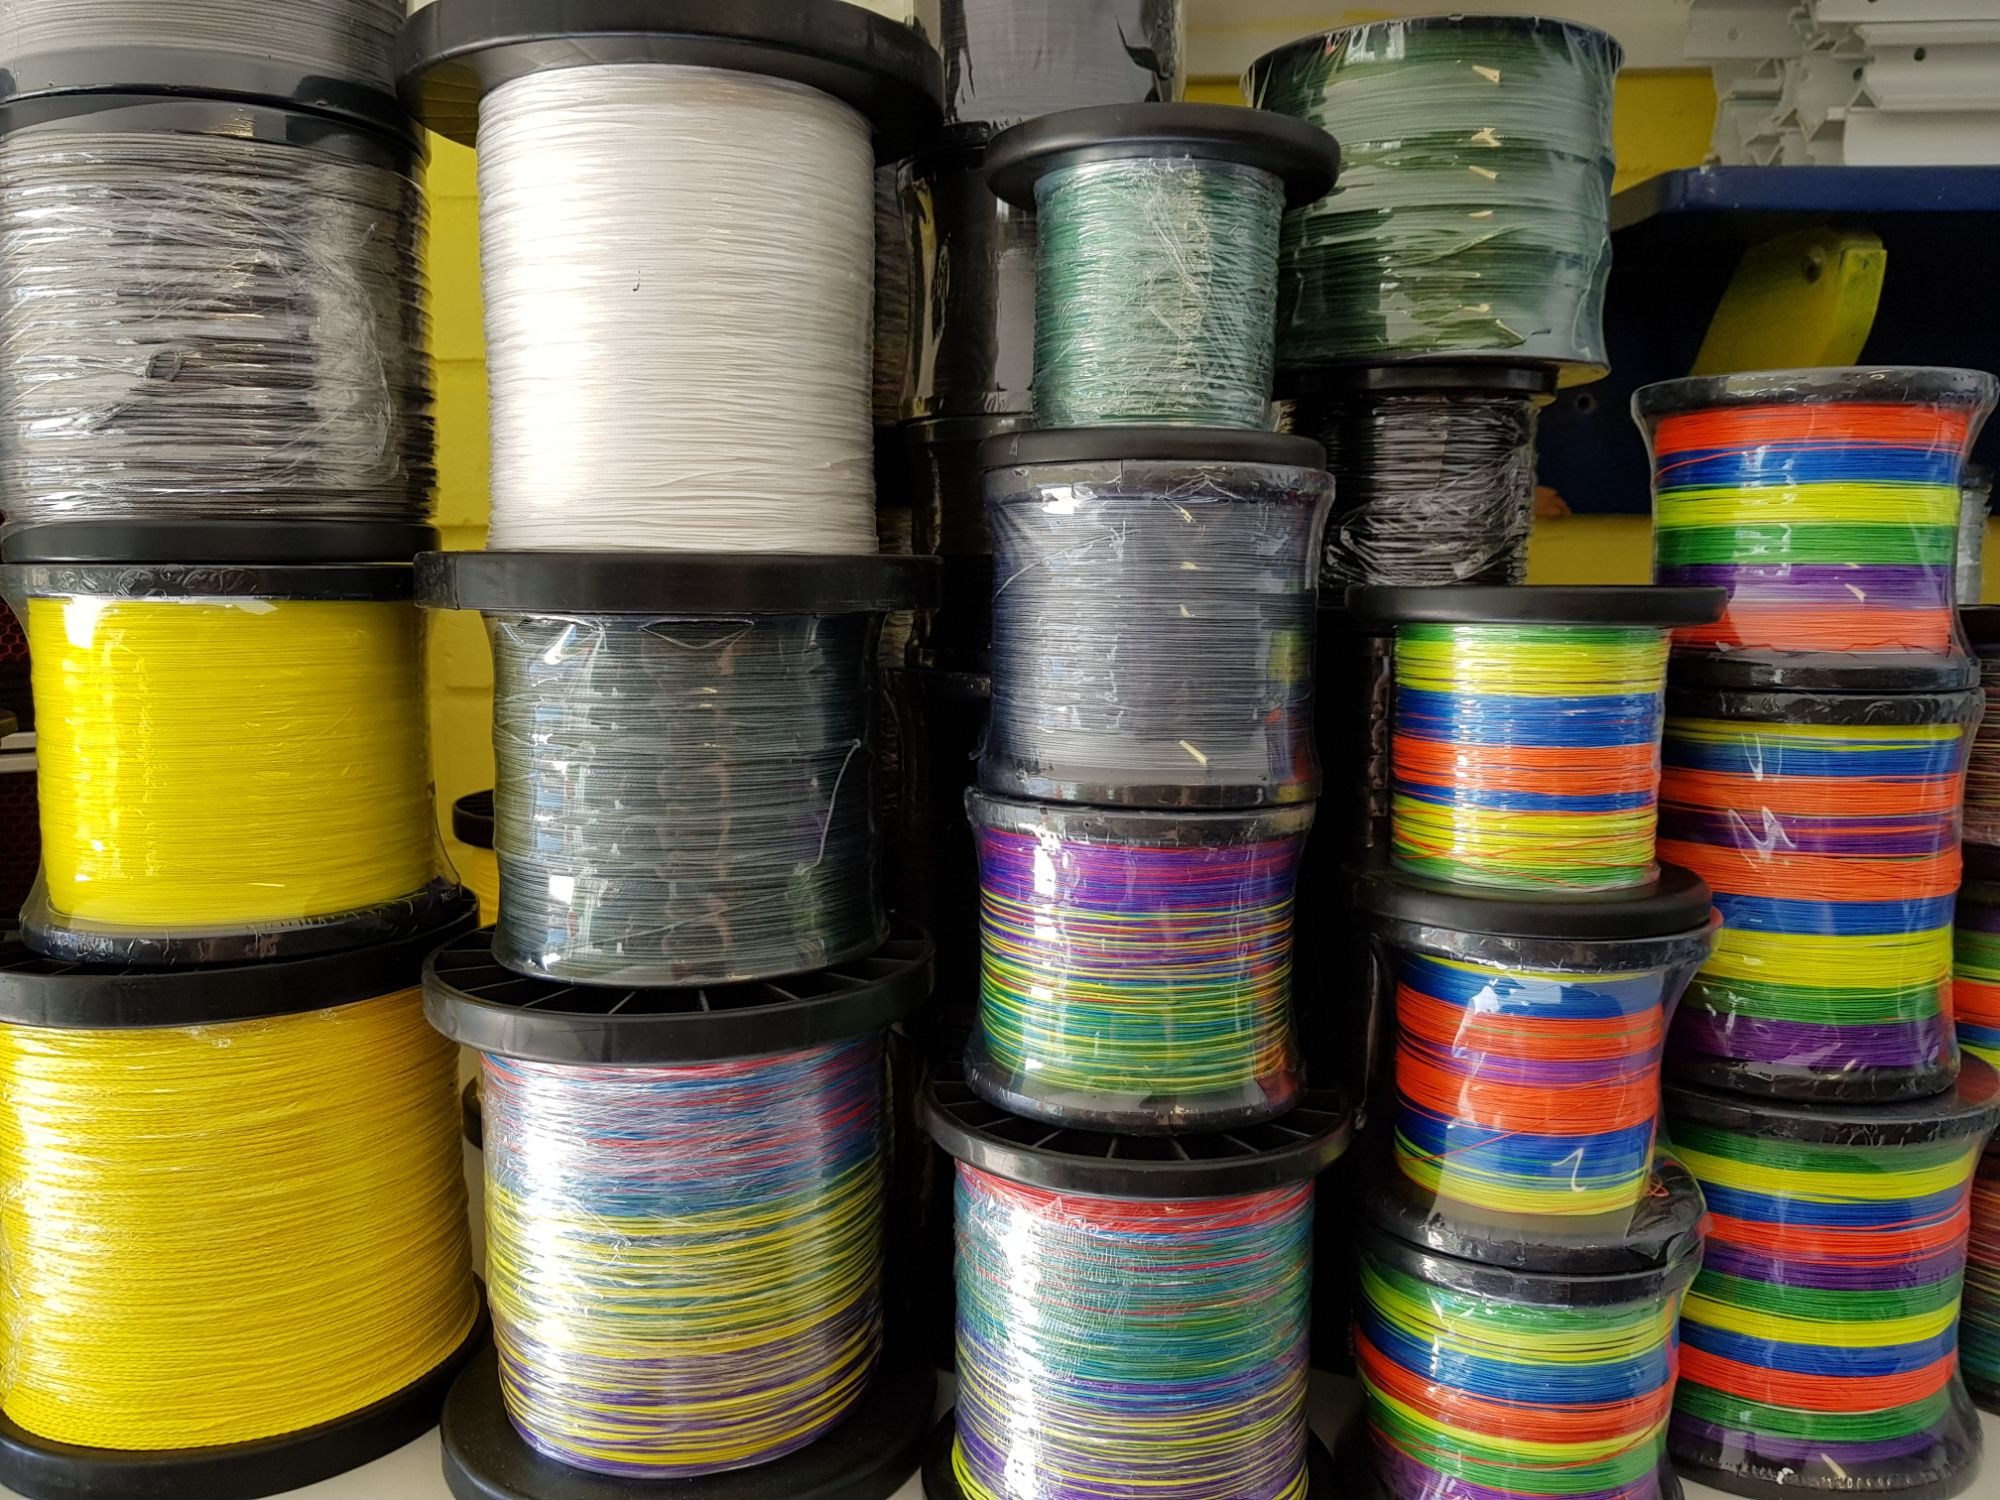 Commercial and Amateur Fishing Lines For Sale in Perth, Western Australia